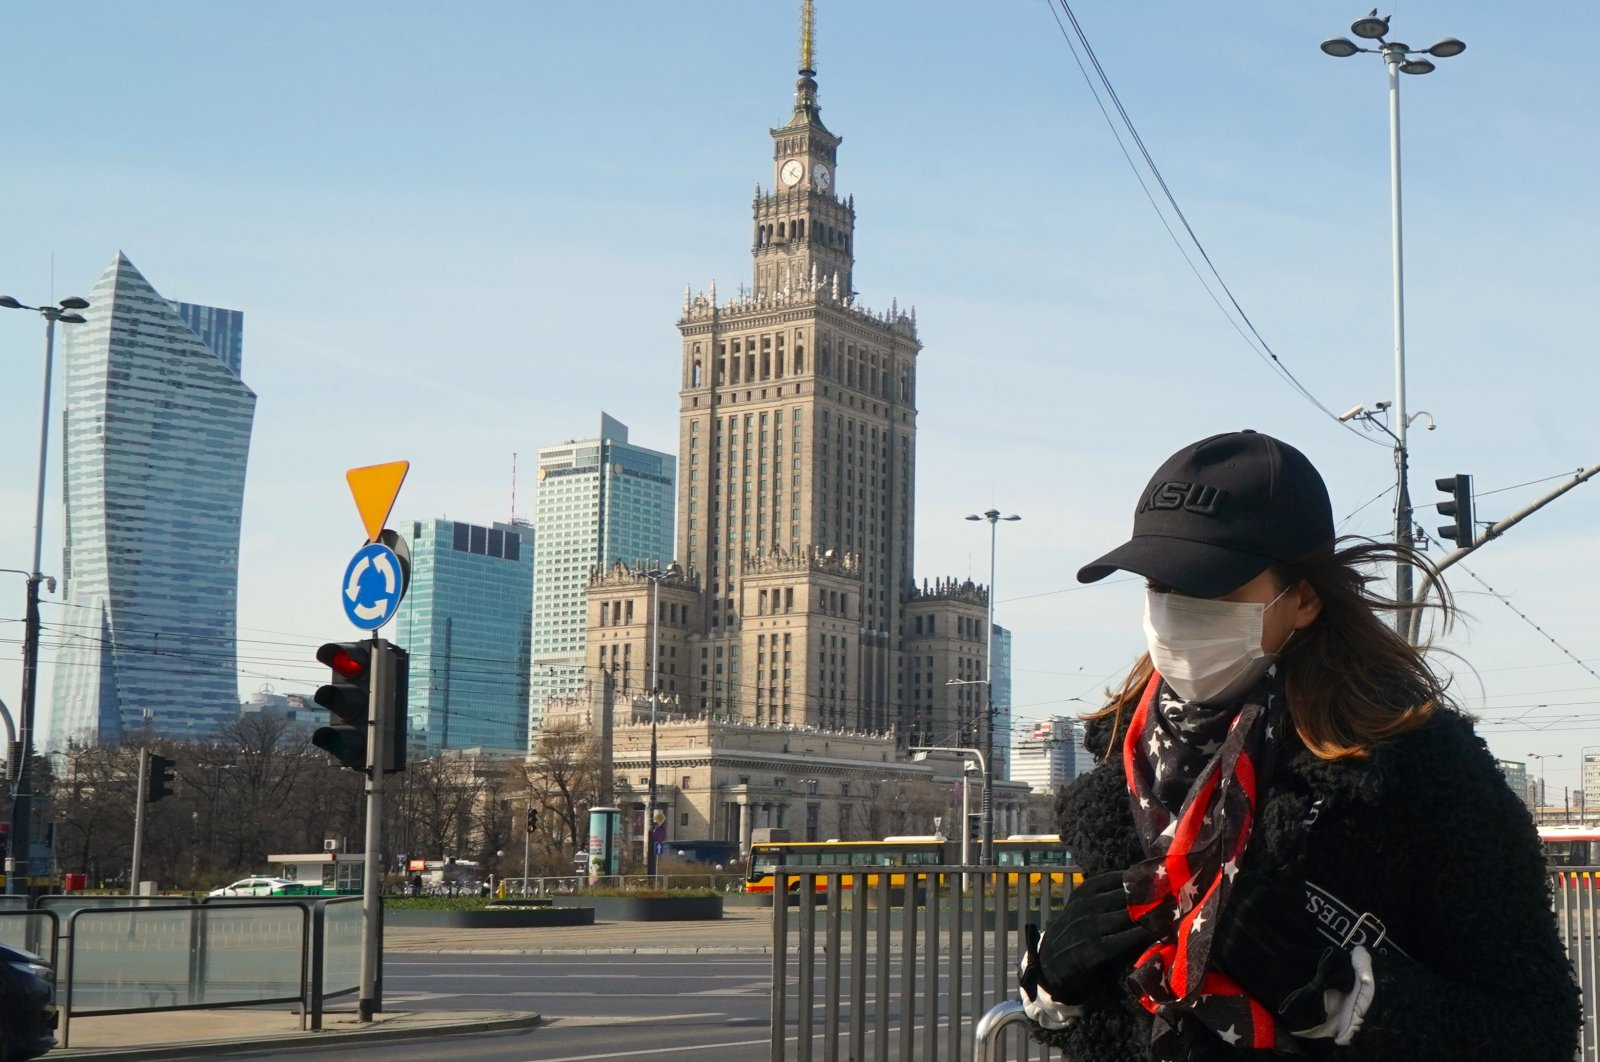 A woman with a face mask walk on March 26, 2020 on a street of Warsaw, amid the novel coronavirus pandemic. (AFP Photo)